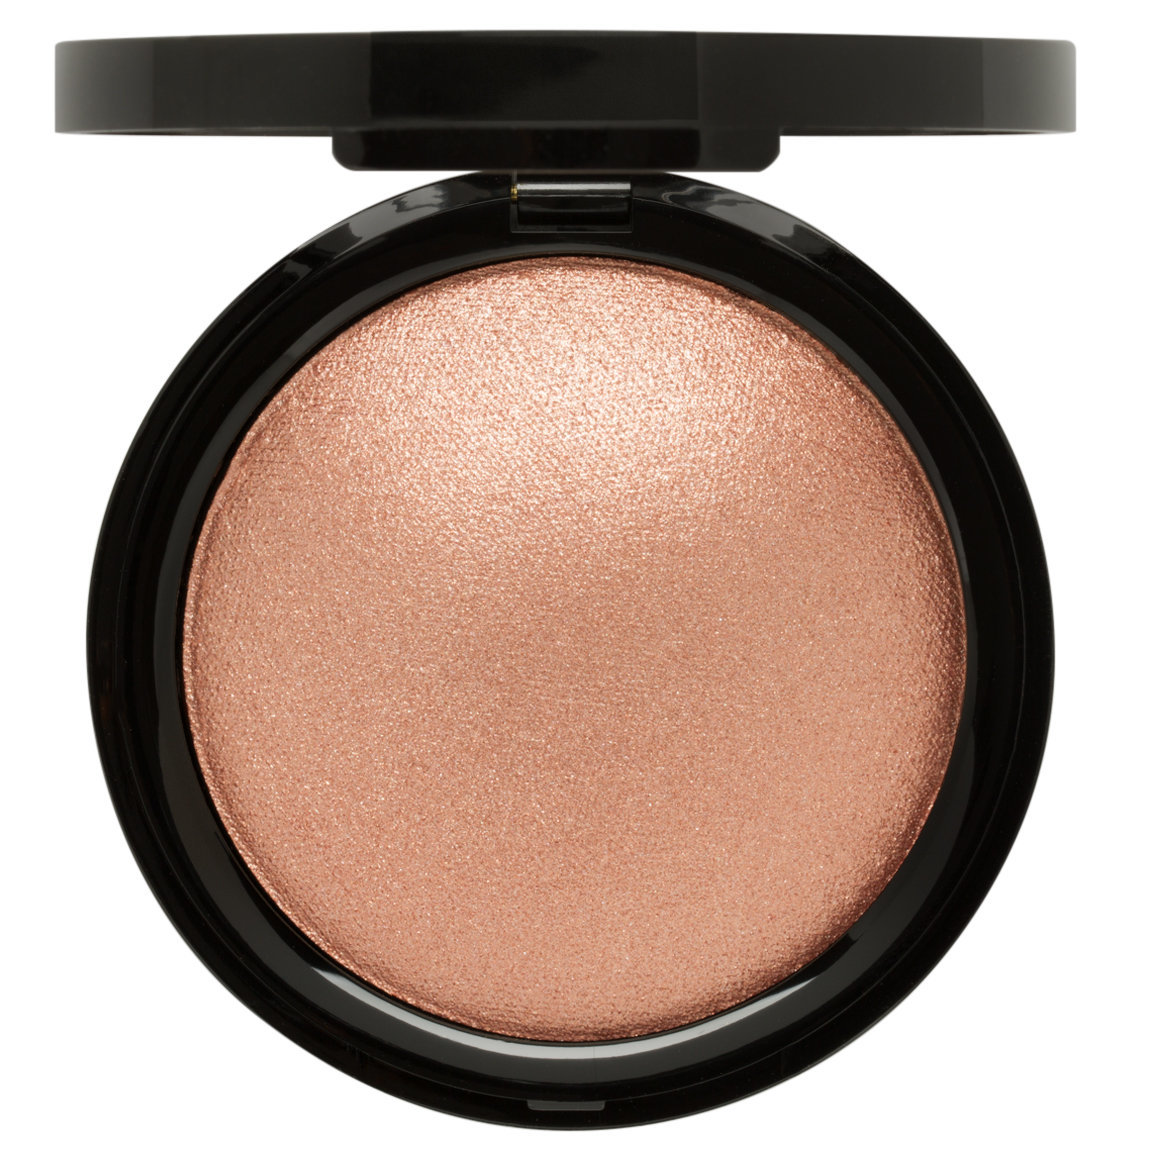 Inglot Cosmetics Soft Sparkler Face Eyes Body Highlighter product smear.